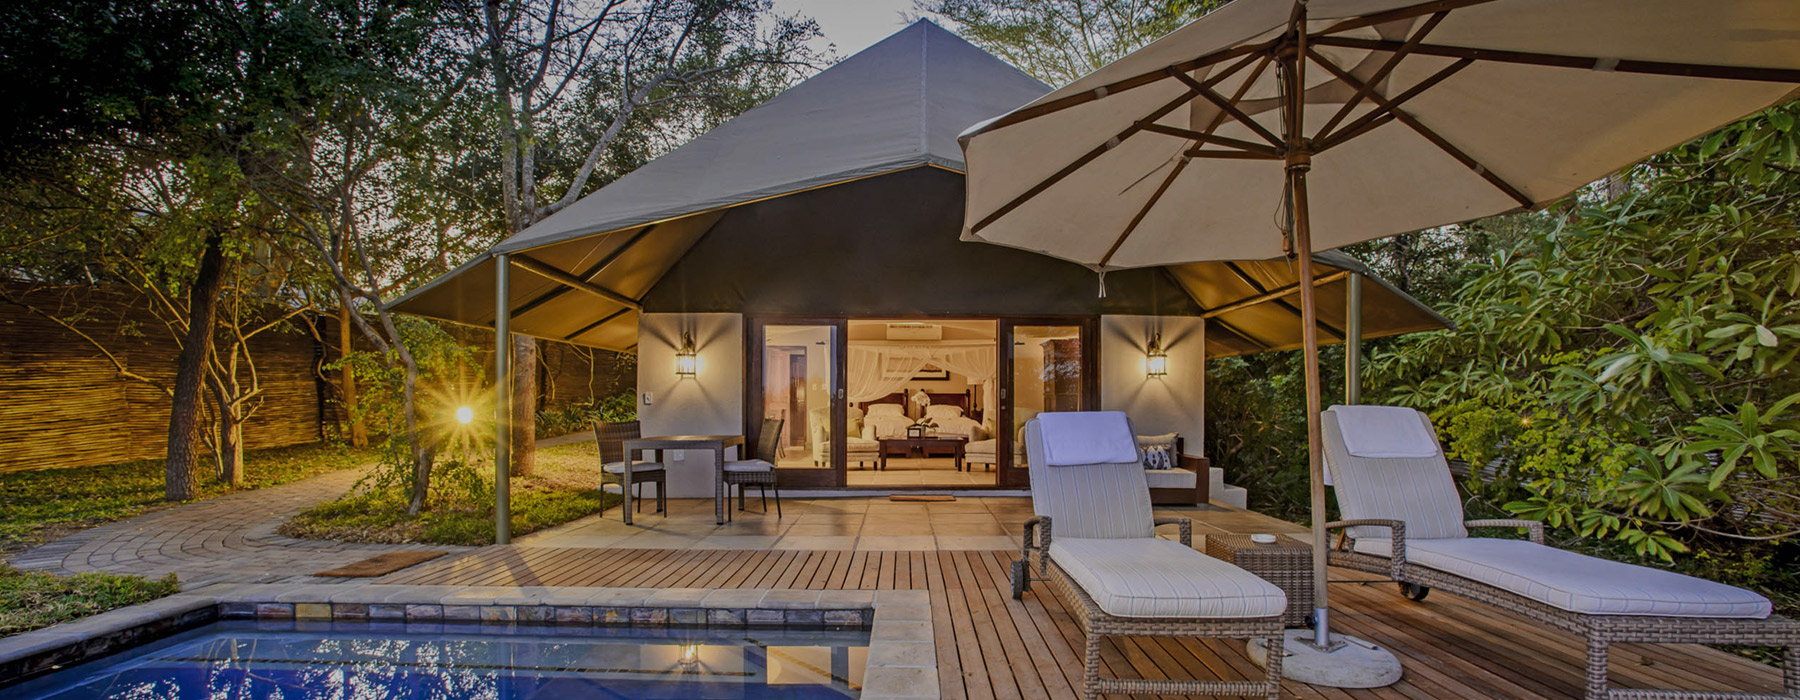 6 Days Tanzania Luxury Safari